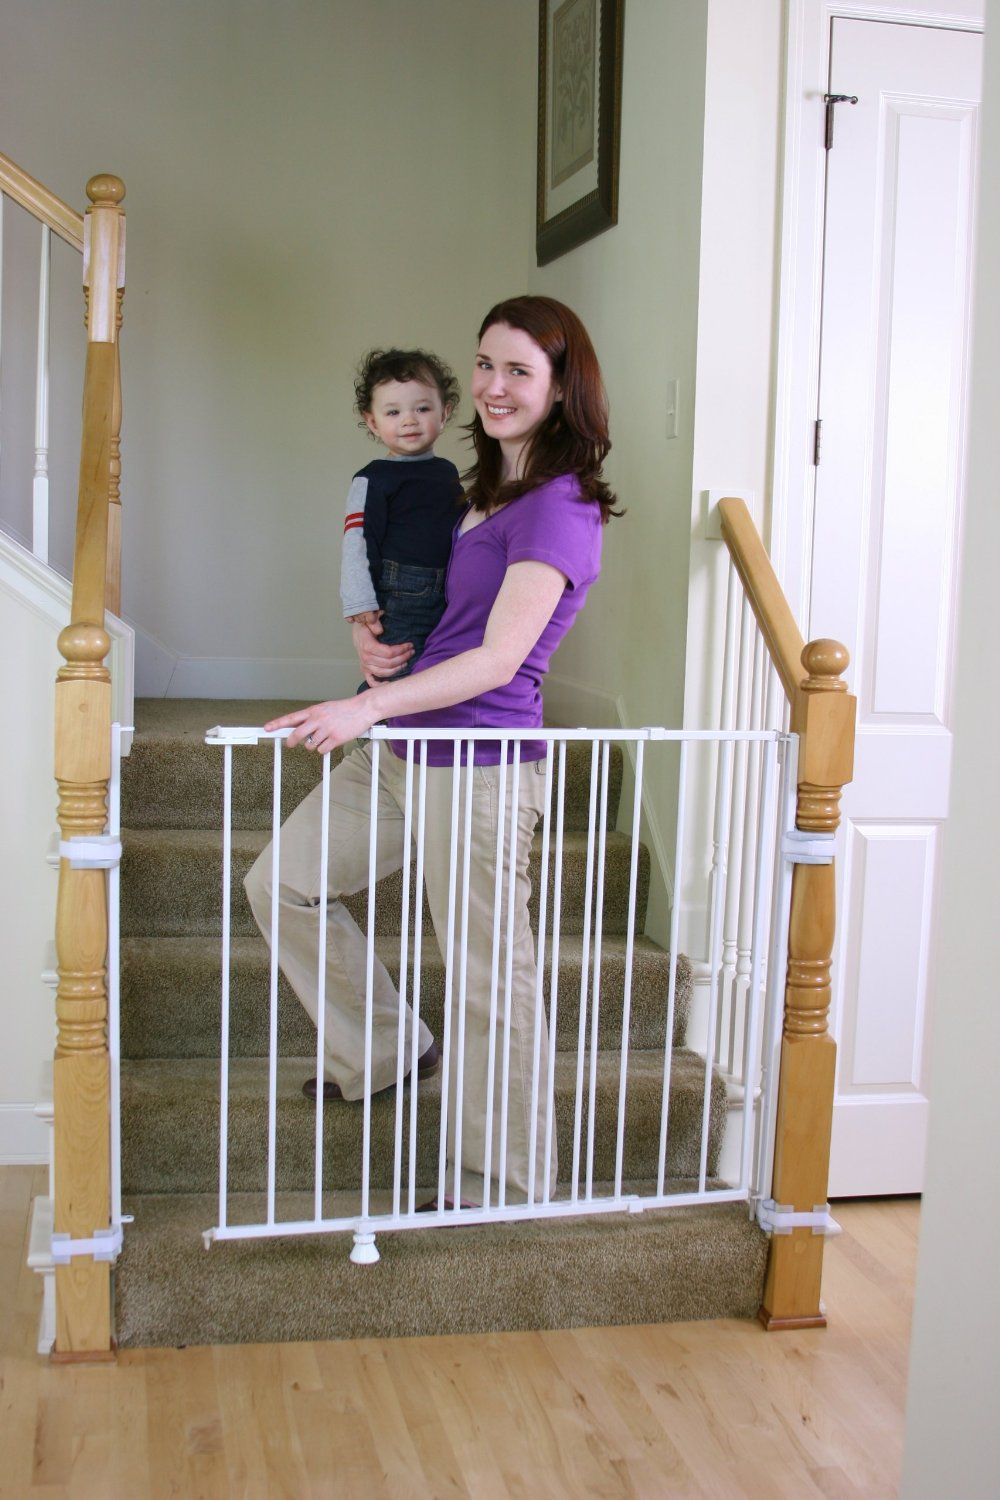 Best Baby Gates For Stairs With Banisters Guide and